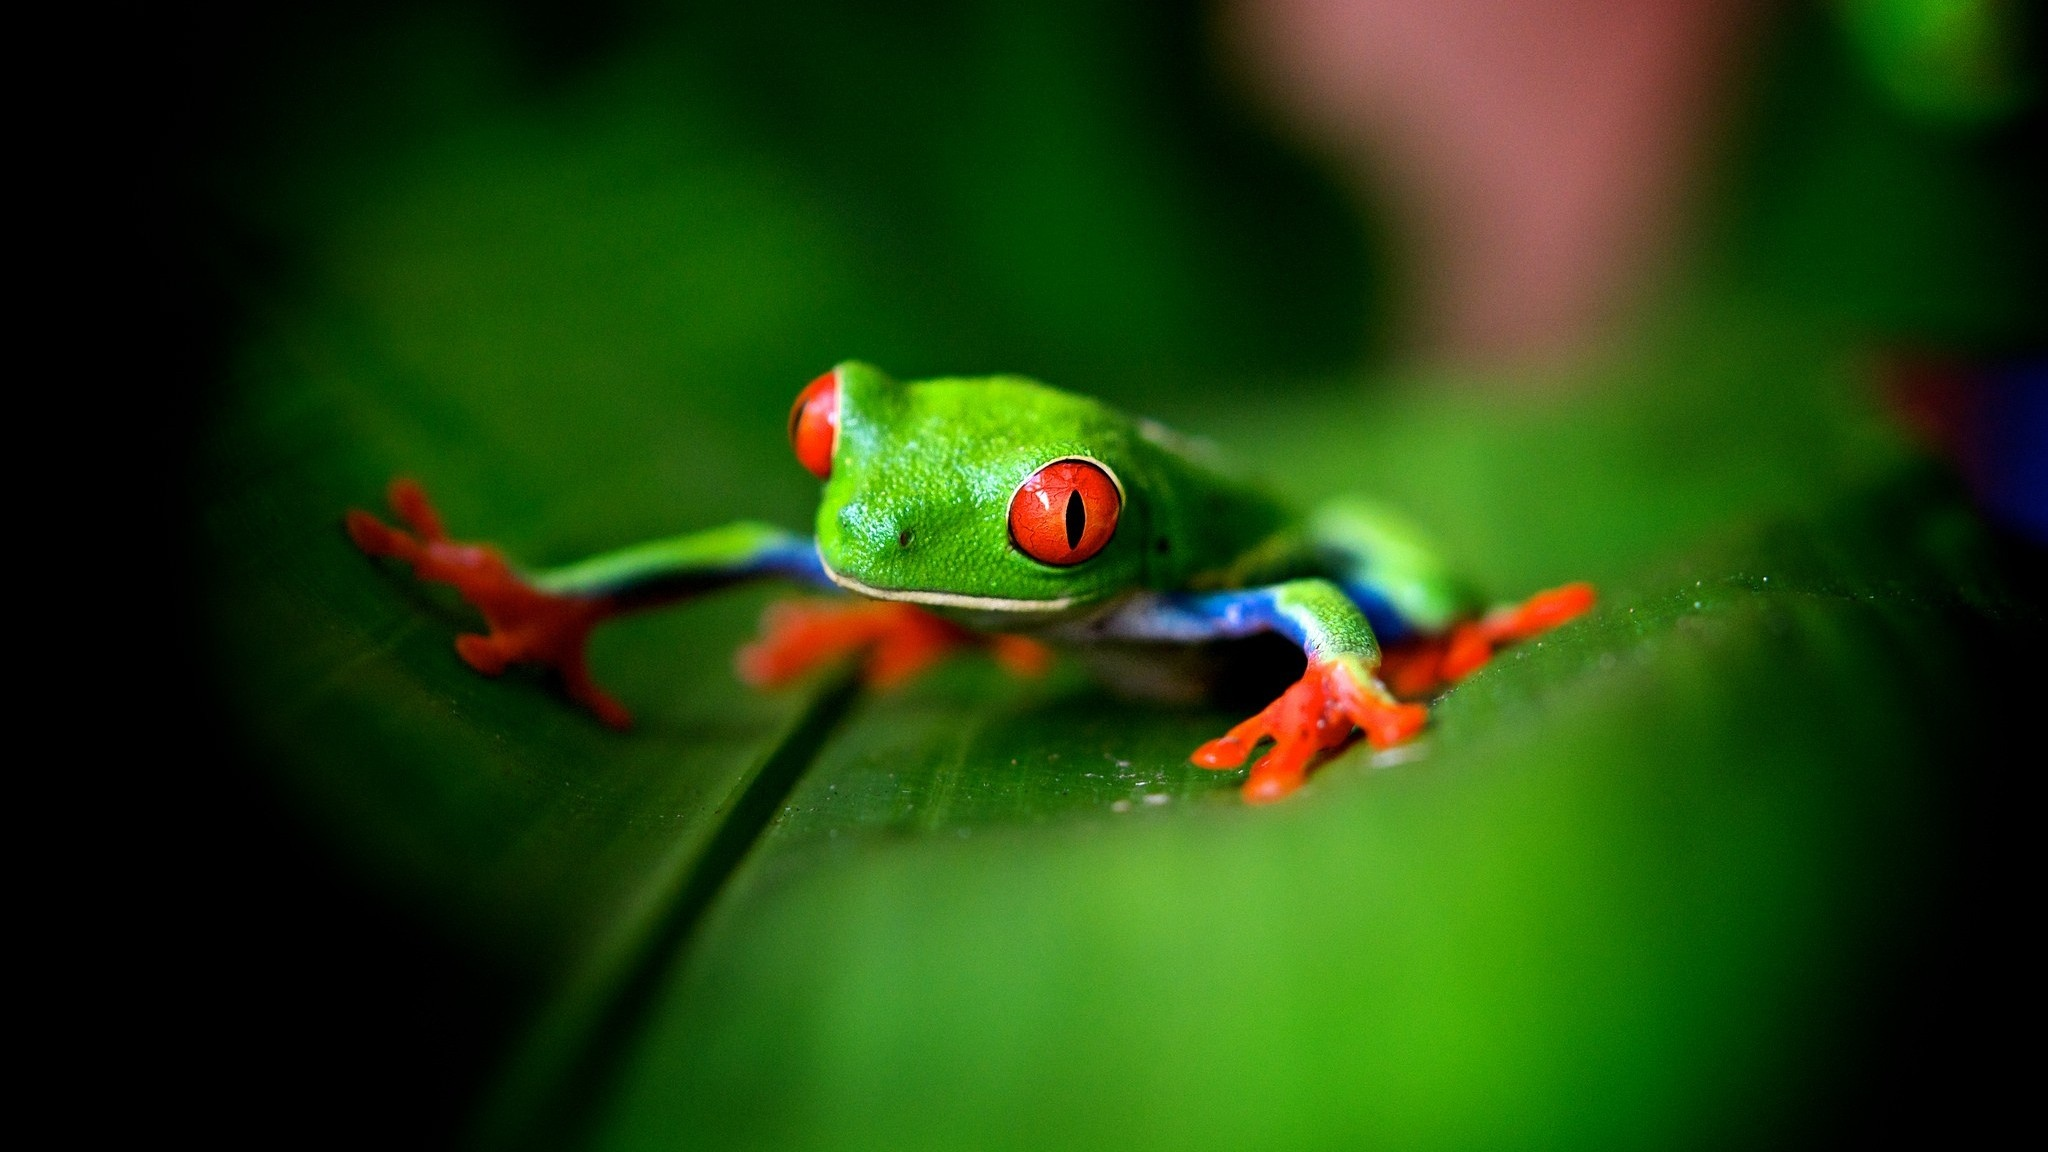 Cute Green Frog 2048 x 1152 Download Close 2048x1152